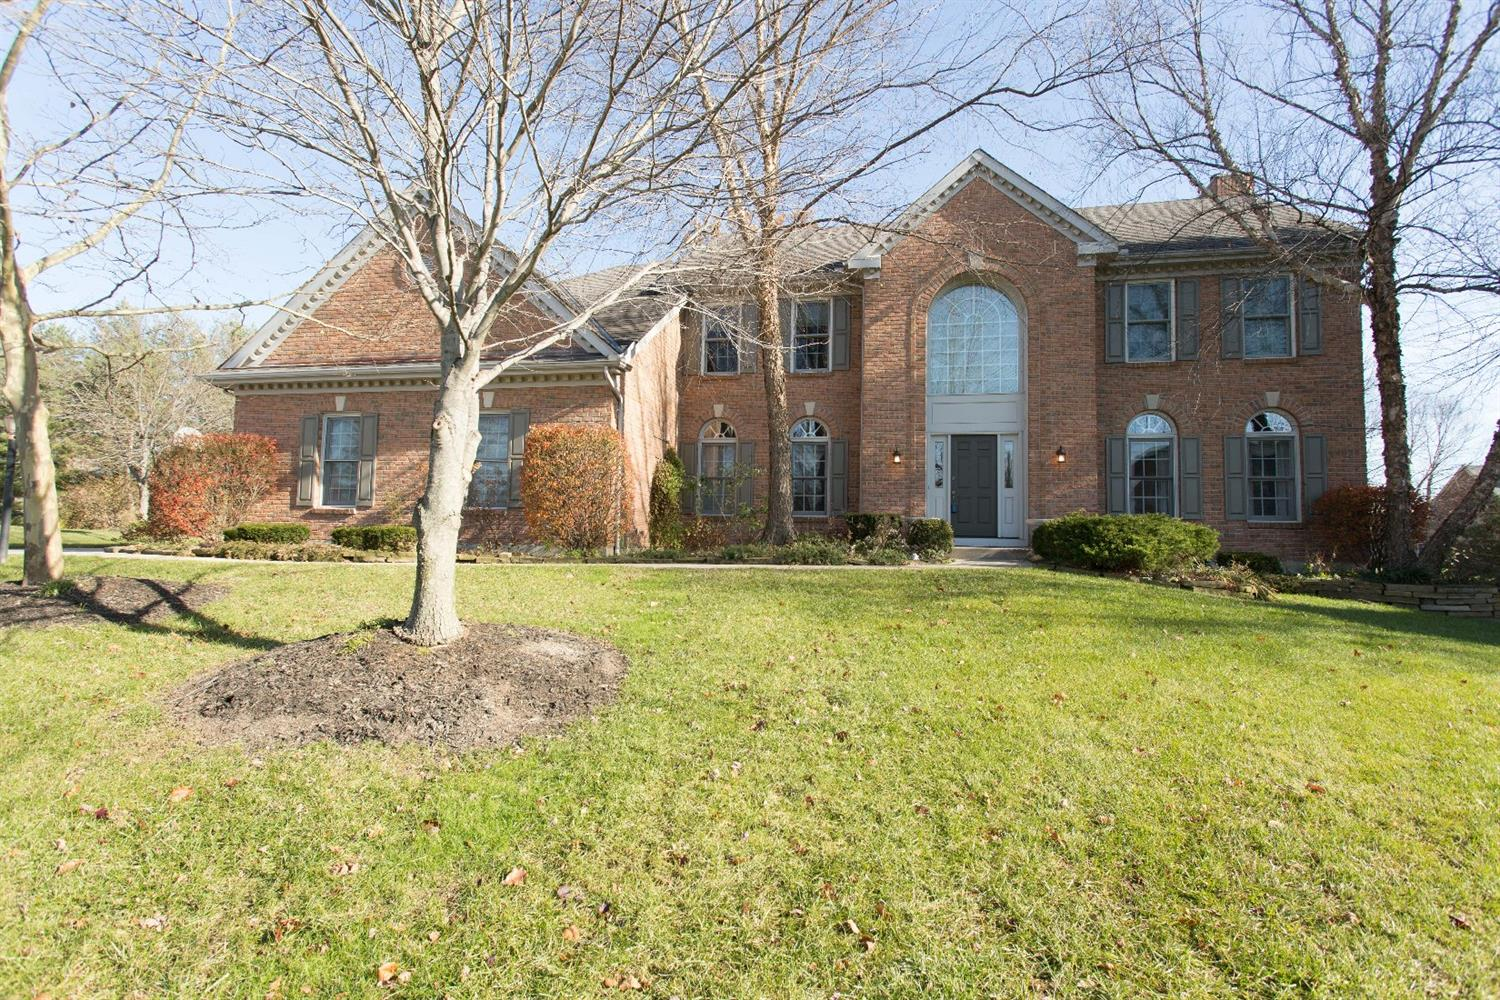 8168 Startinggate Ln Sycamore Twp., OH